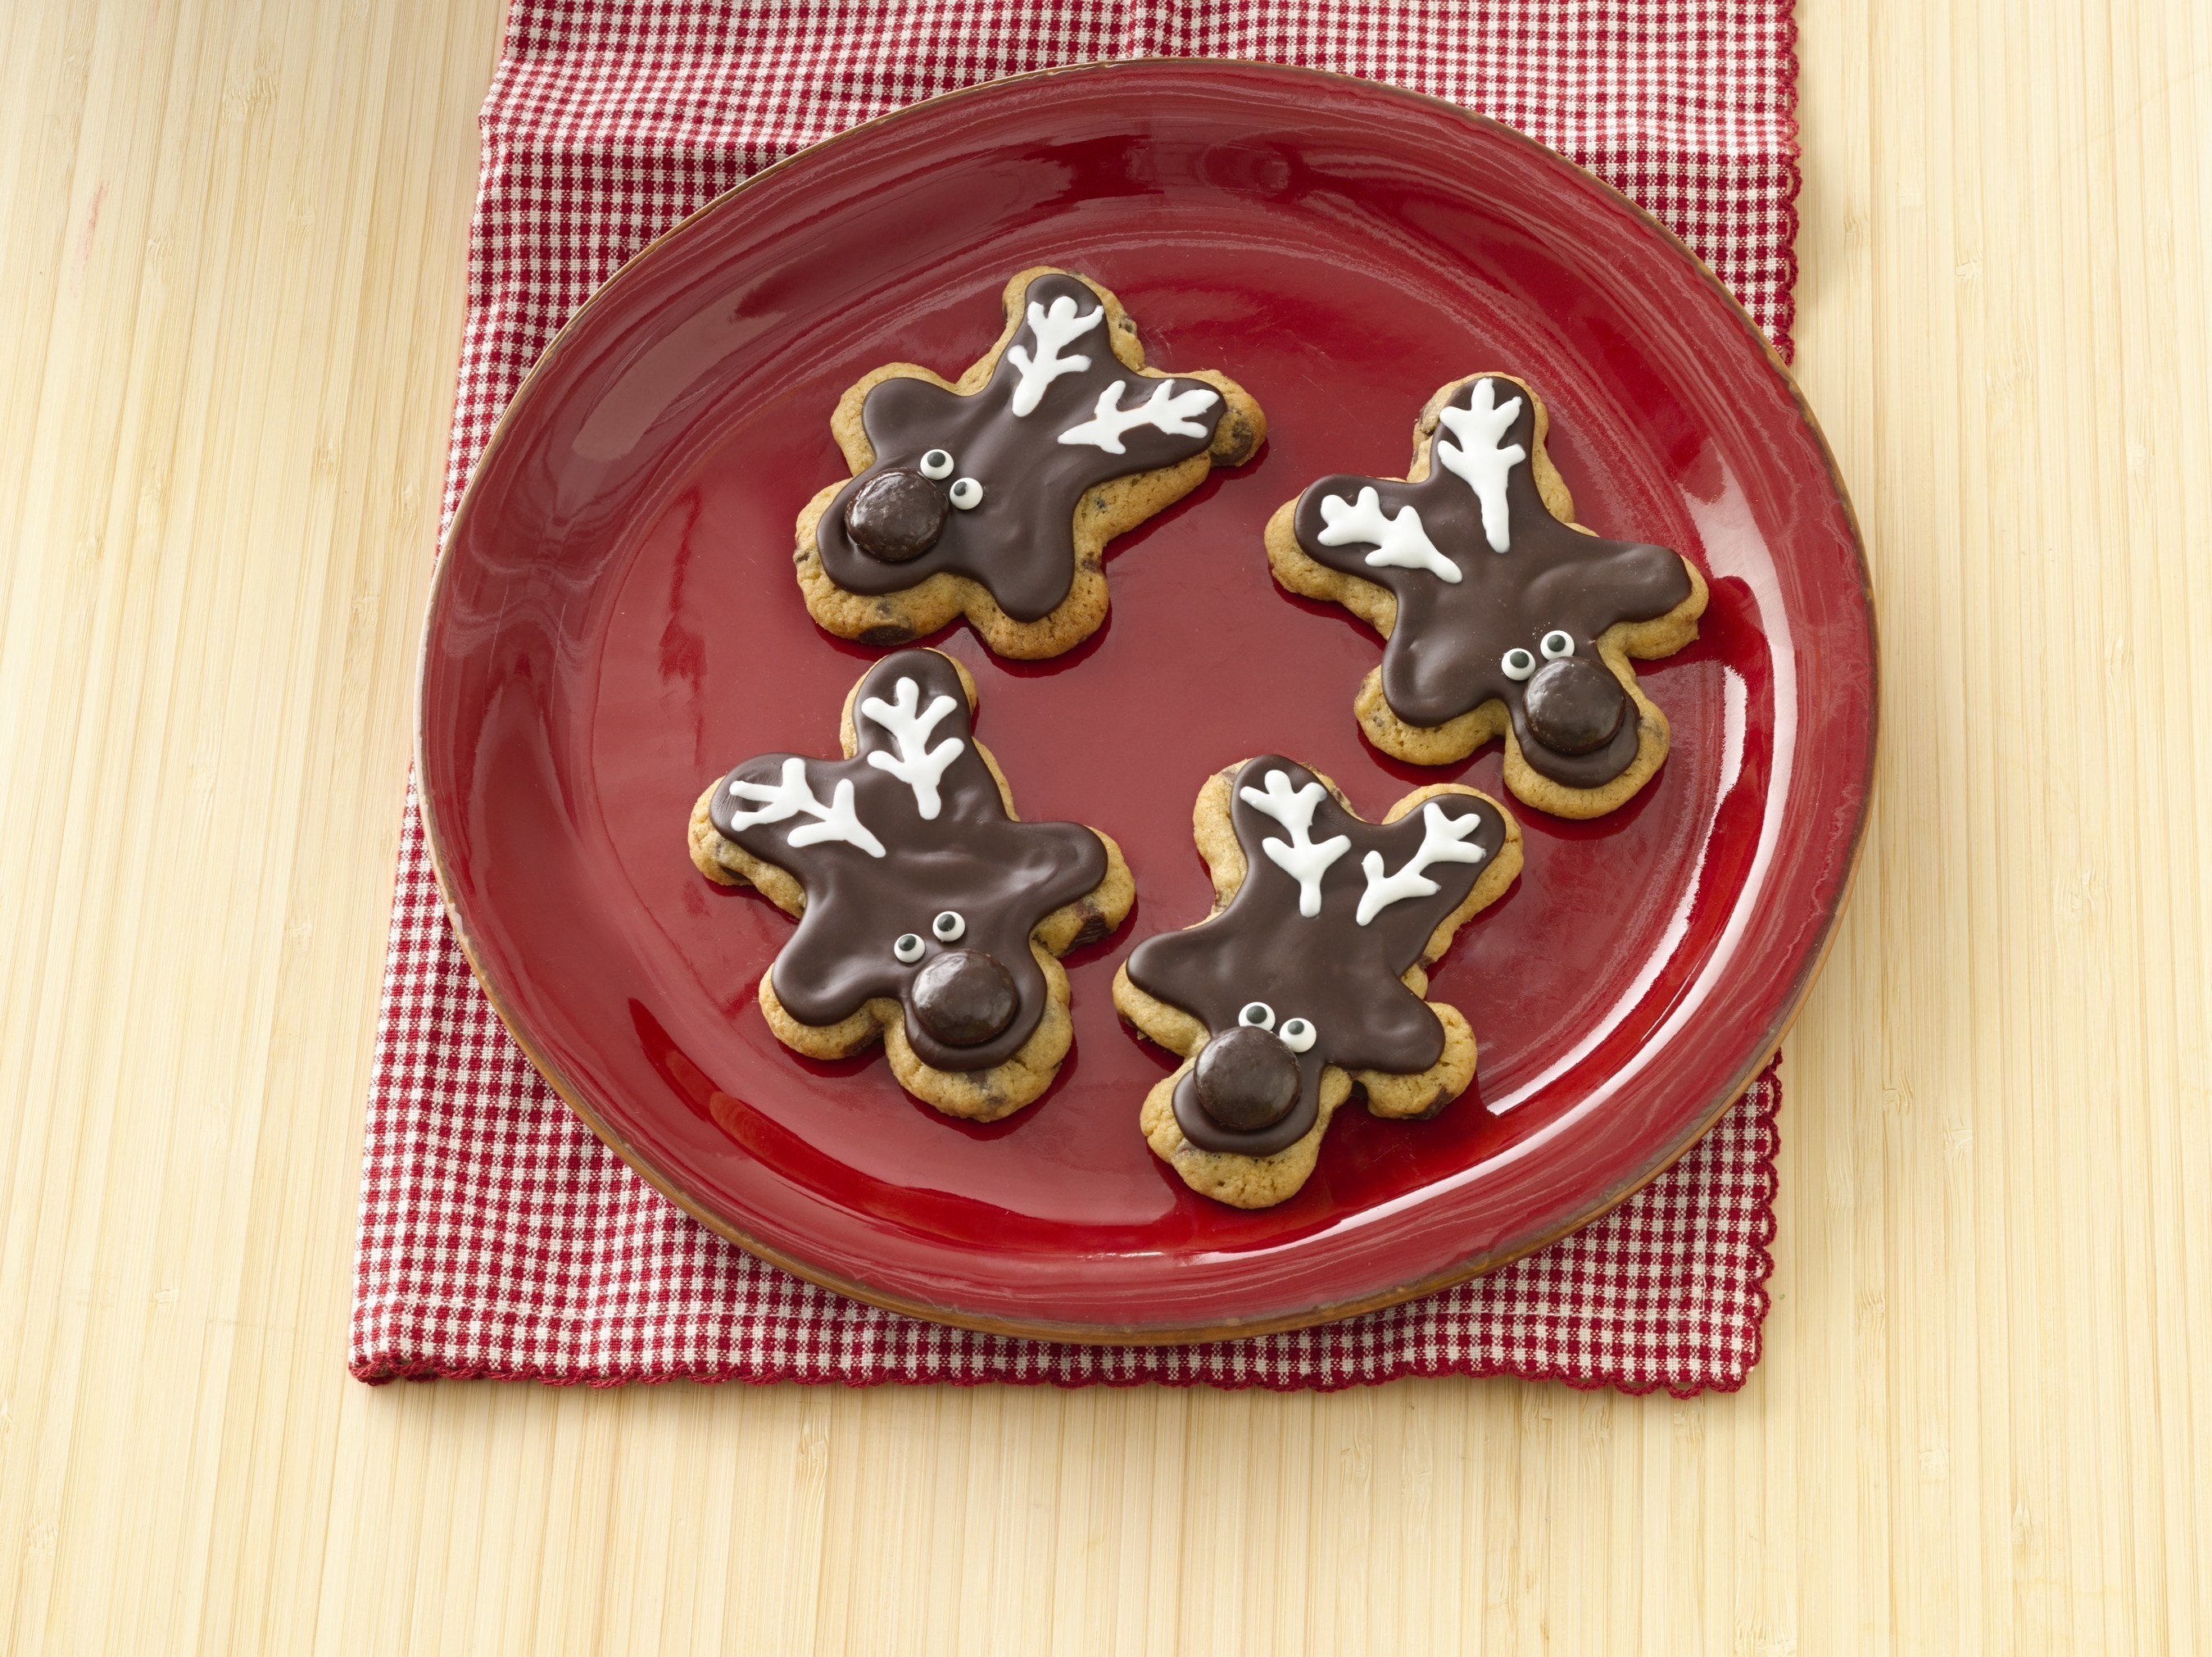 #GetYourBettyOn this holiday season with top cookie recipes for kids and how-to tips at BettyCrocker.com/KidsCookieCorner.